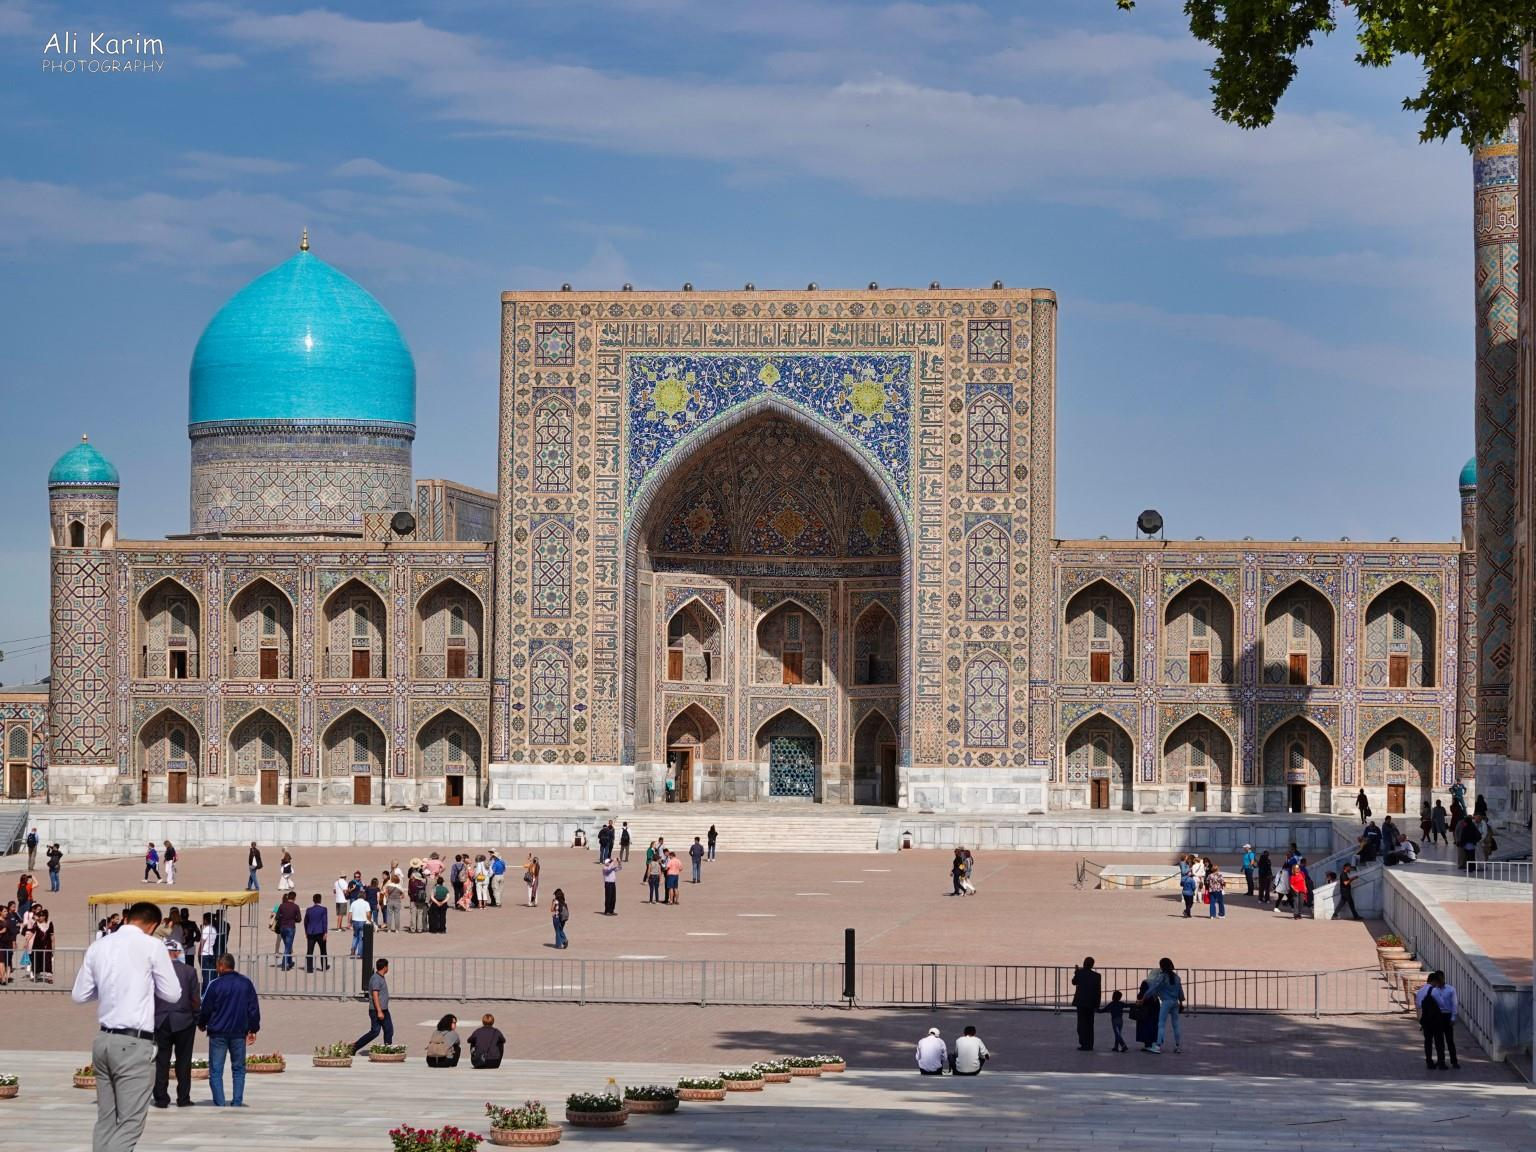 More Samarkand, View of one of the 3 madrassas in the Registan, beautiful Tilya-Kori Madrasah, which was a place of student residences as well as a Grand Mosque